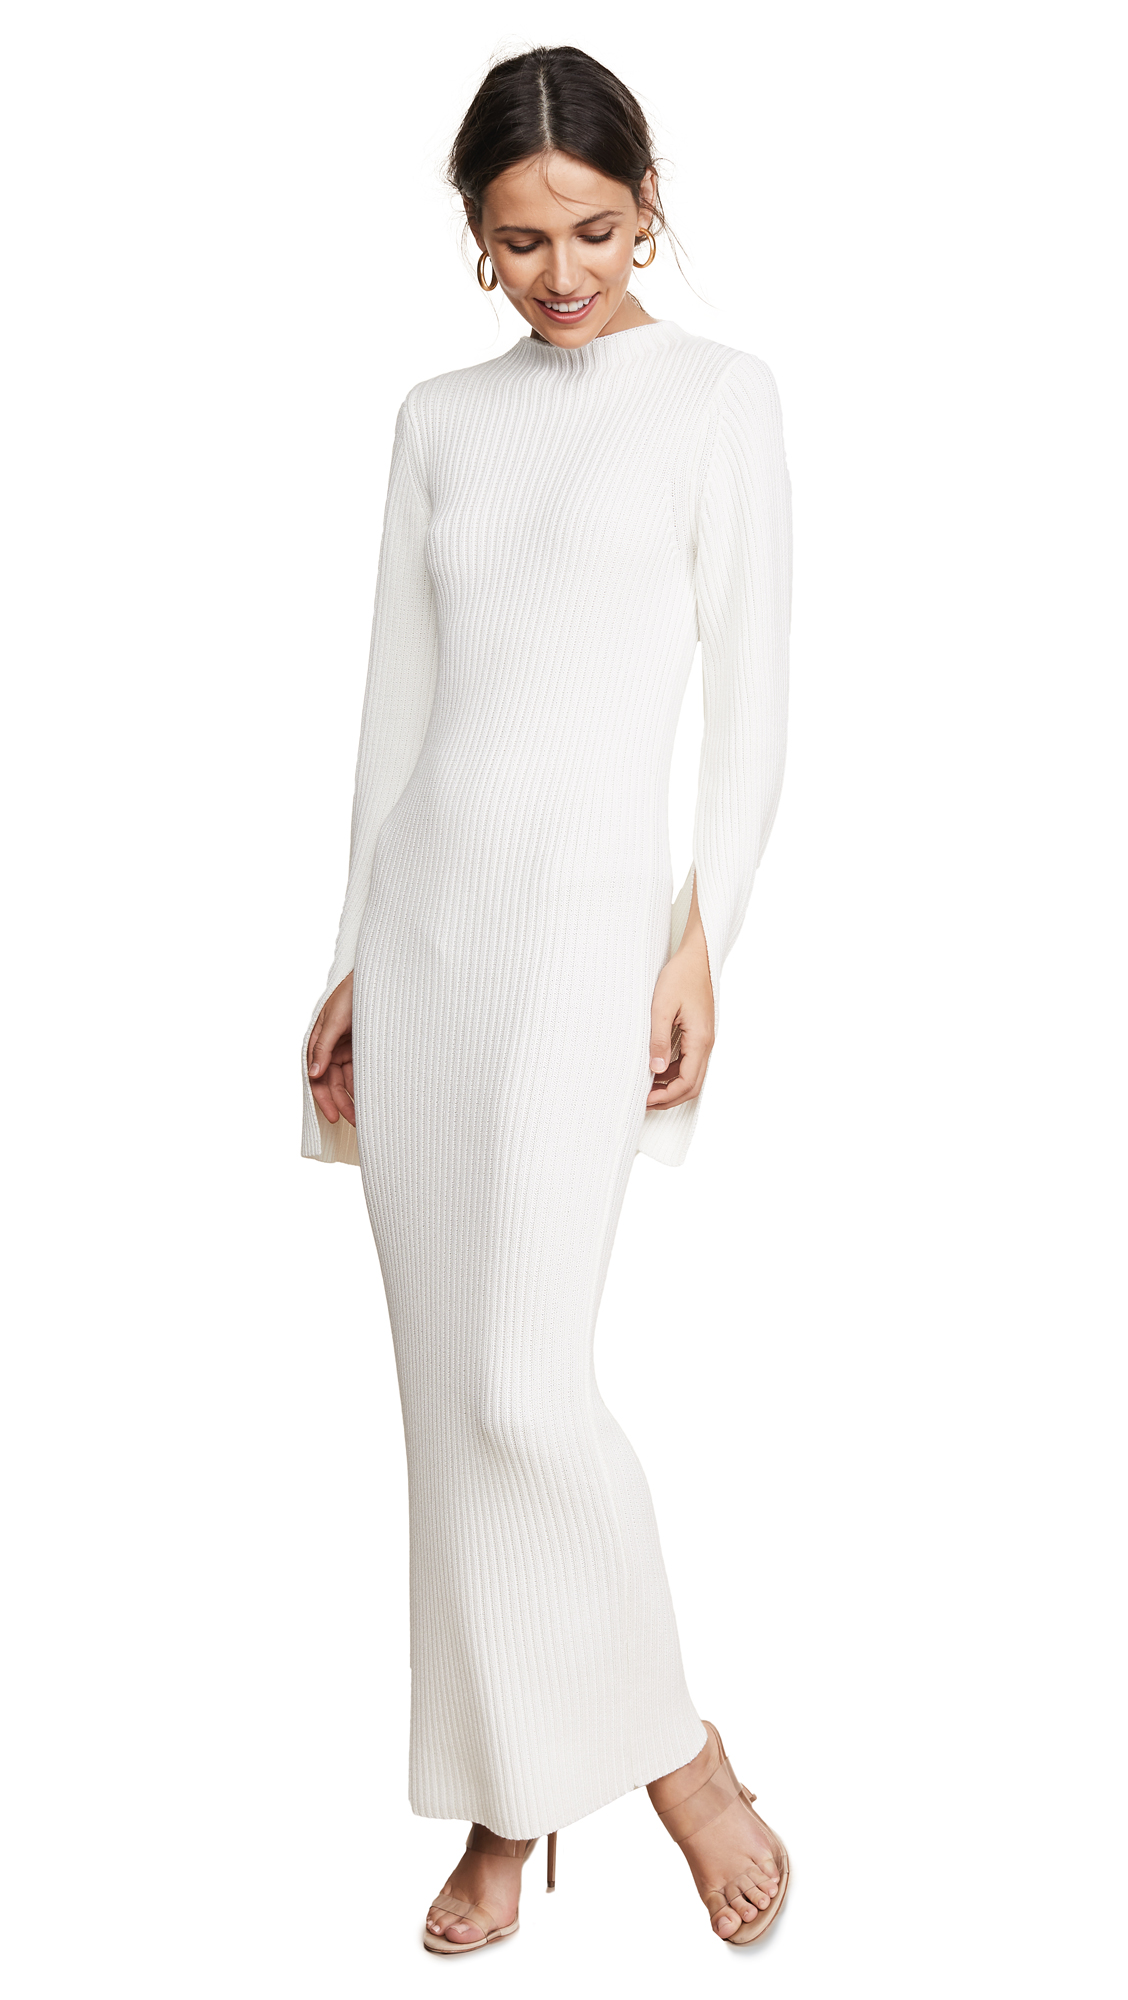 Celina Dress, Winter White